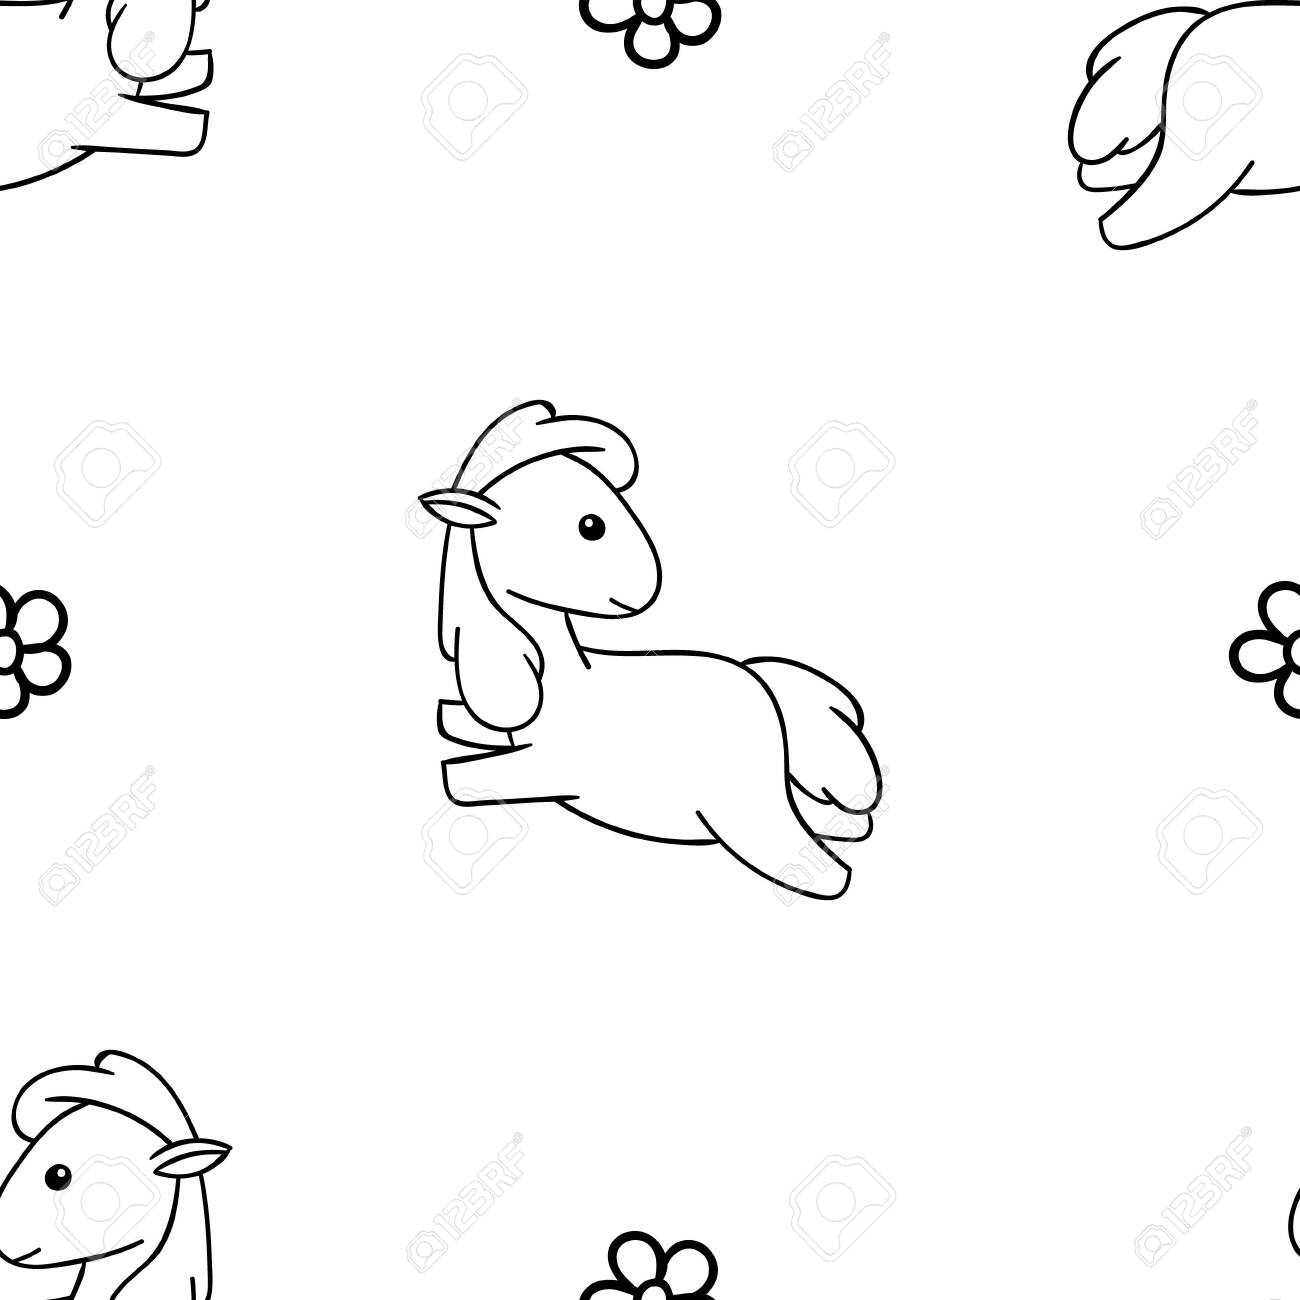 Seamless Pattern Black And White Cute Hand Drawn Horse Doodle Royalty Free Cliparts Vectors And Stock Illustration Image 144305880